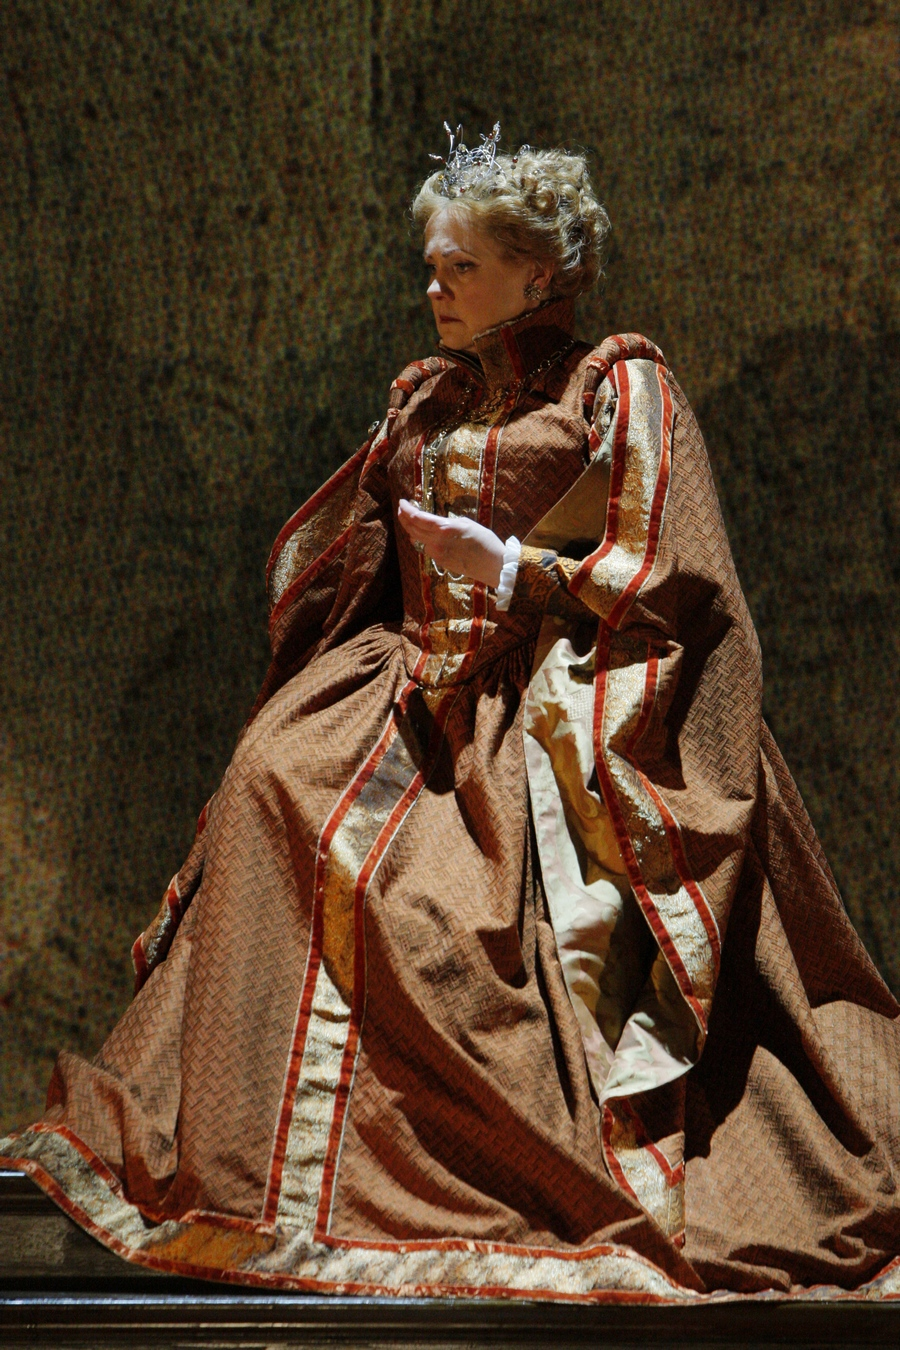 ARTS IN ACTION: Washington Concert Opera star soprano BRENDA HARRIS as Elisabetta in Minnesota Opera's 2010 production of Gaetano Donizetti's ROBERTO DEVEREUX [Photo by Michael Daniel, © by Minnesota Opera]